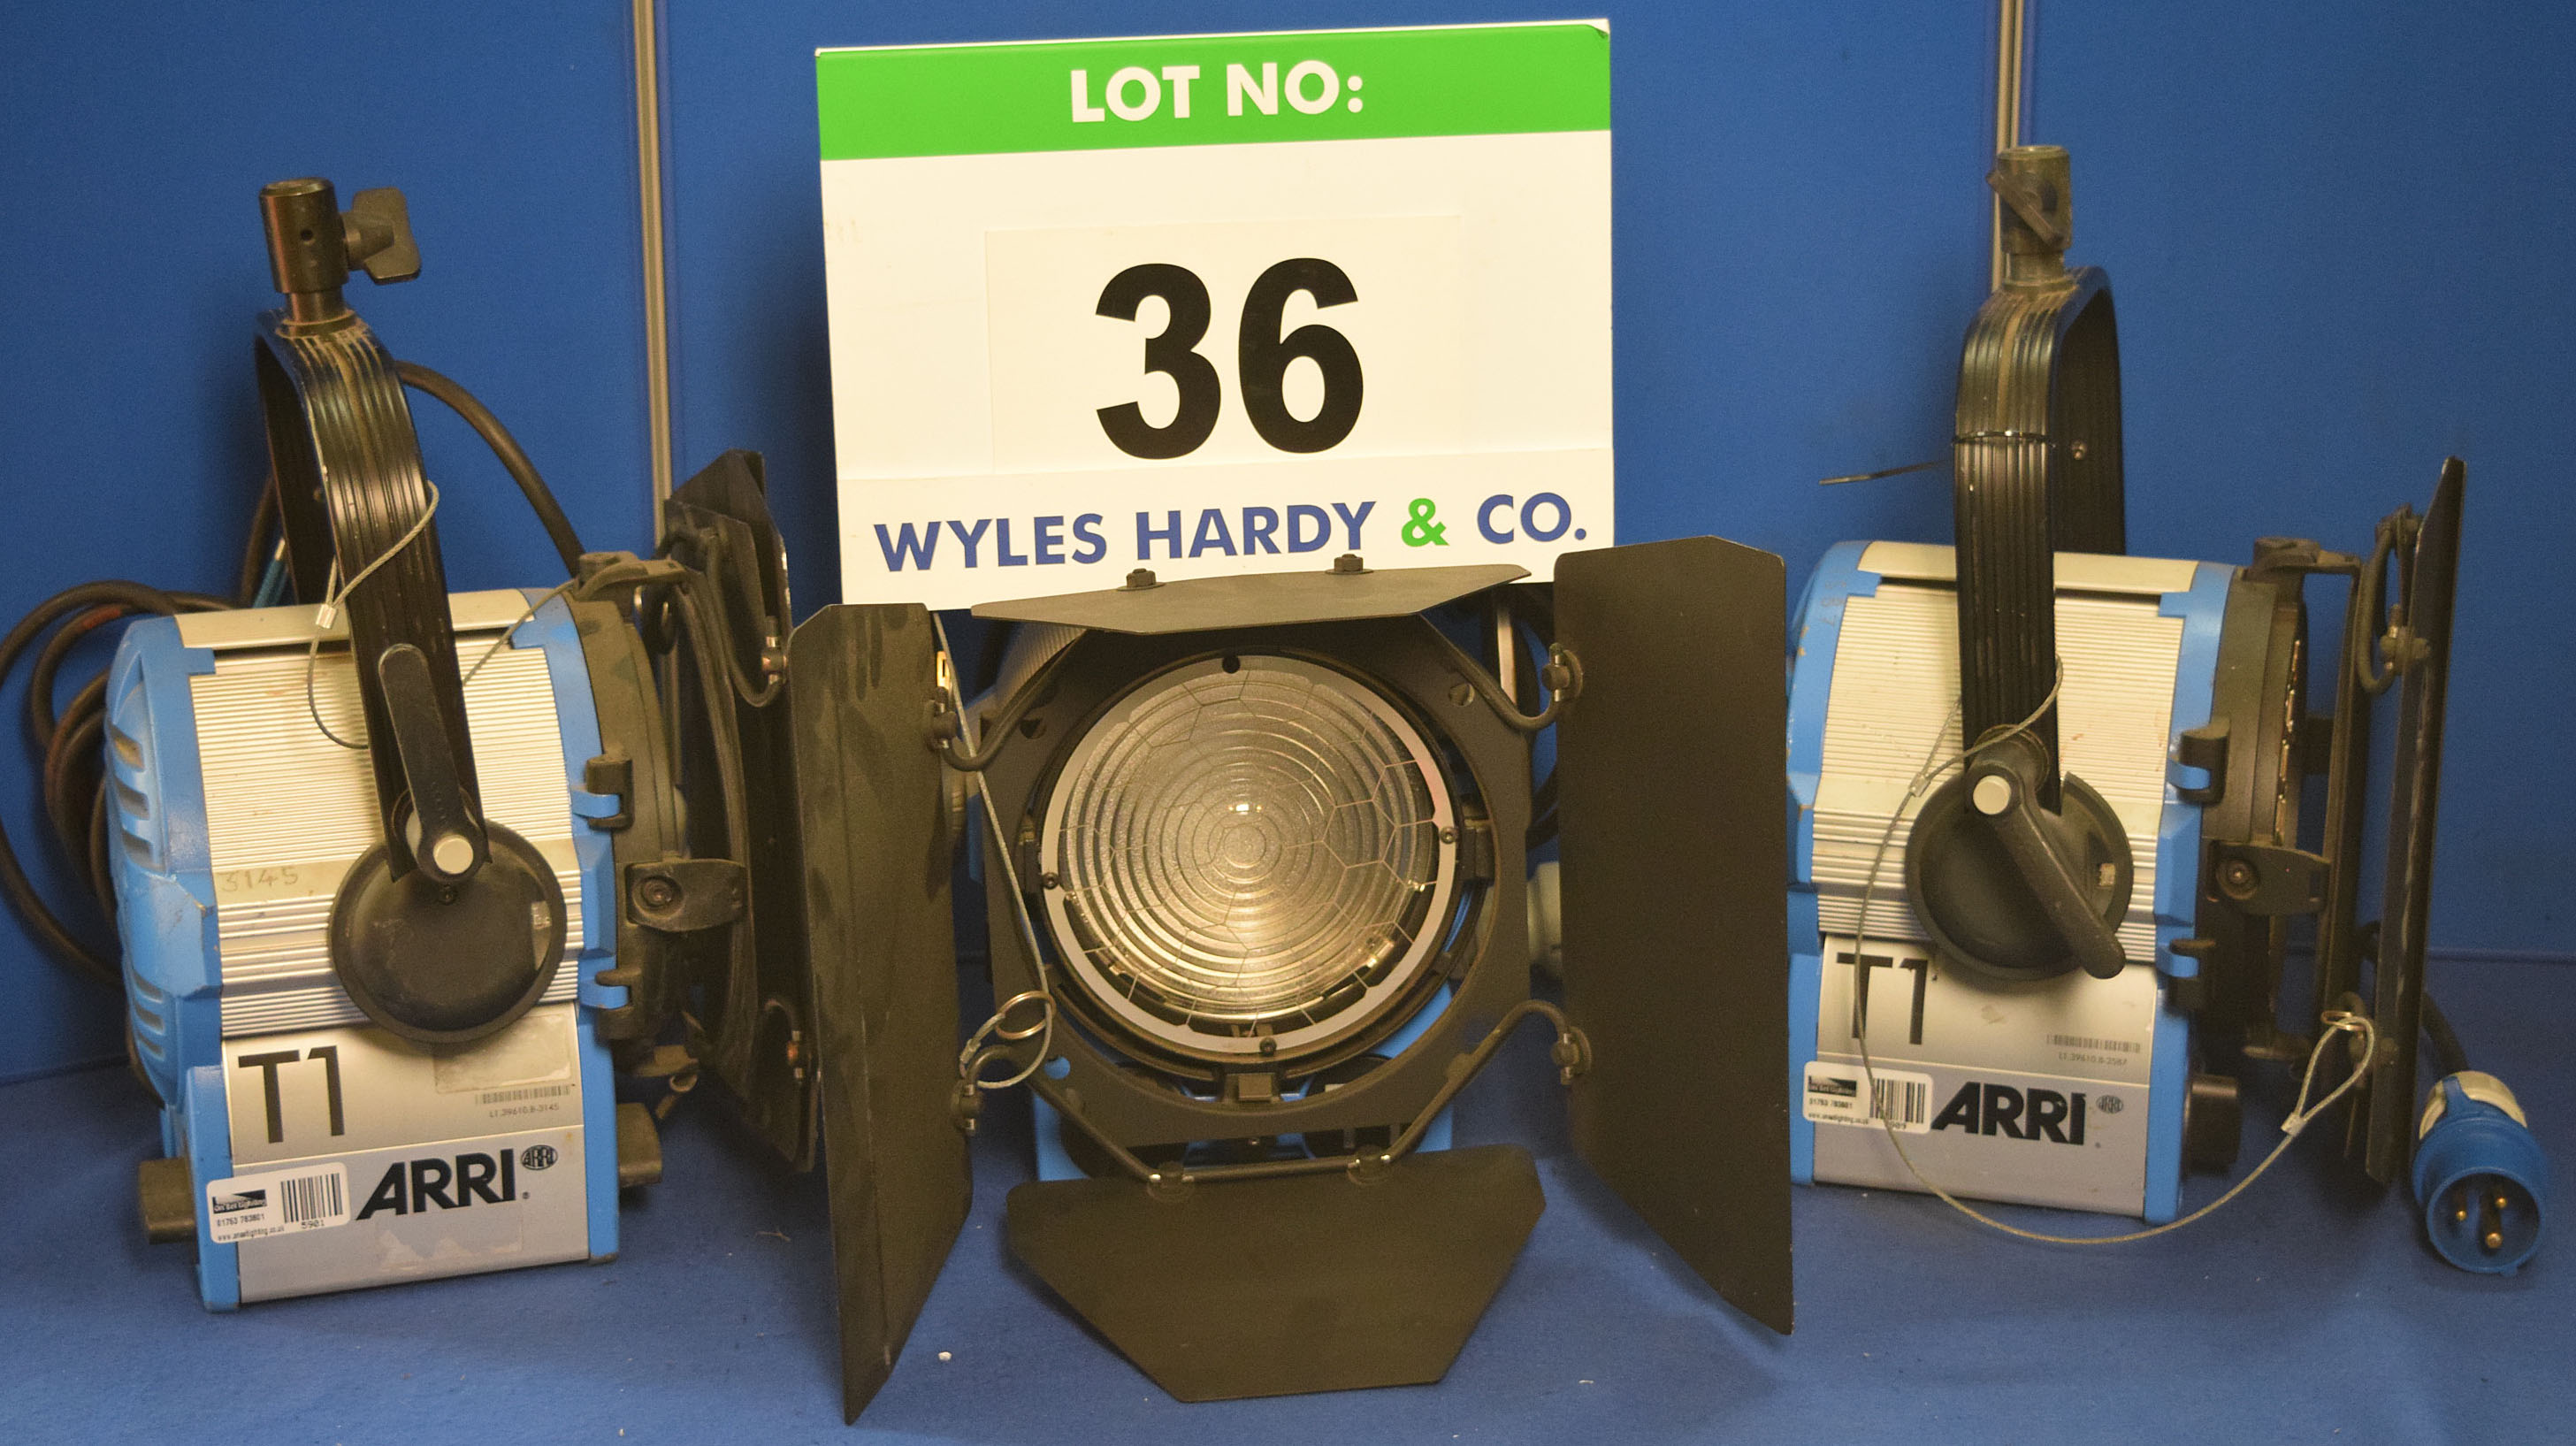 Lot 36 - Three ARRI T1 1000W Lights, Two with fitted Barn Doors and All with Stirrup Mounts and Switched